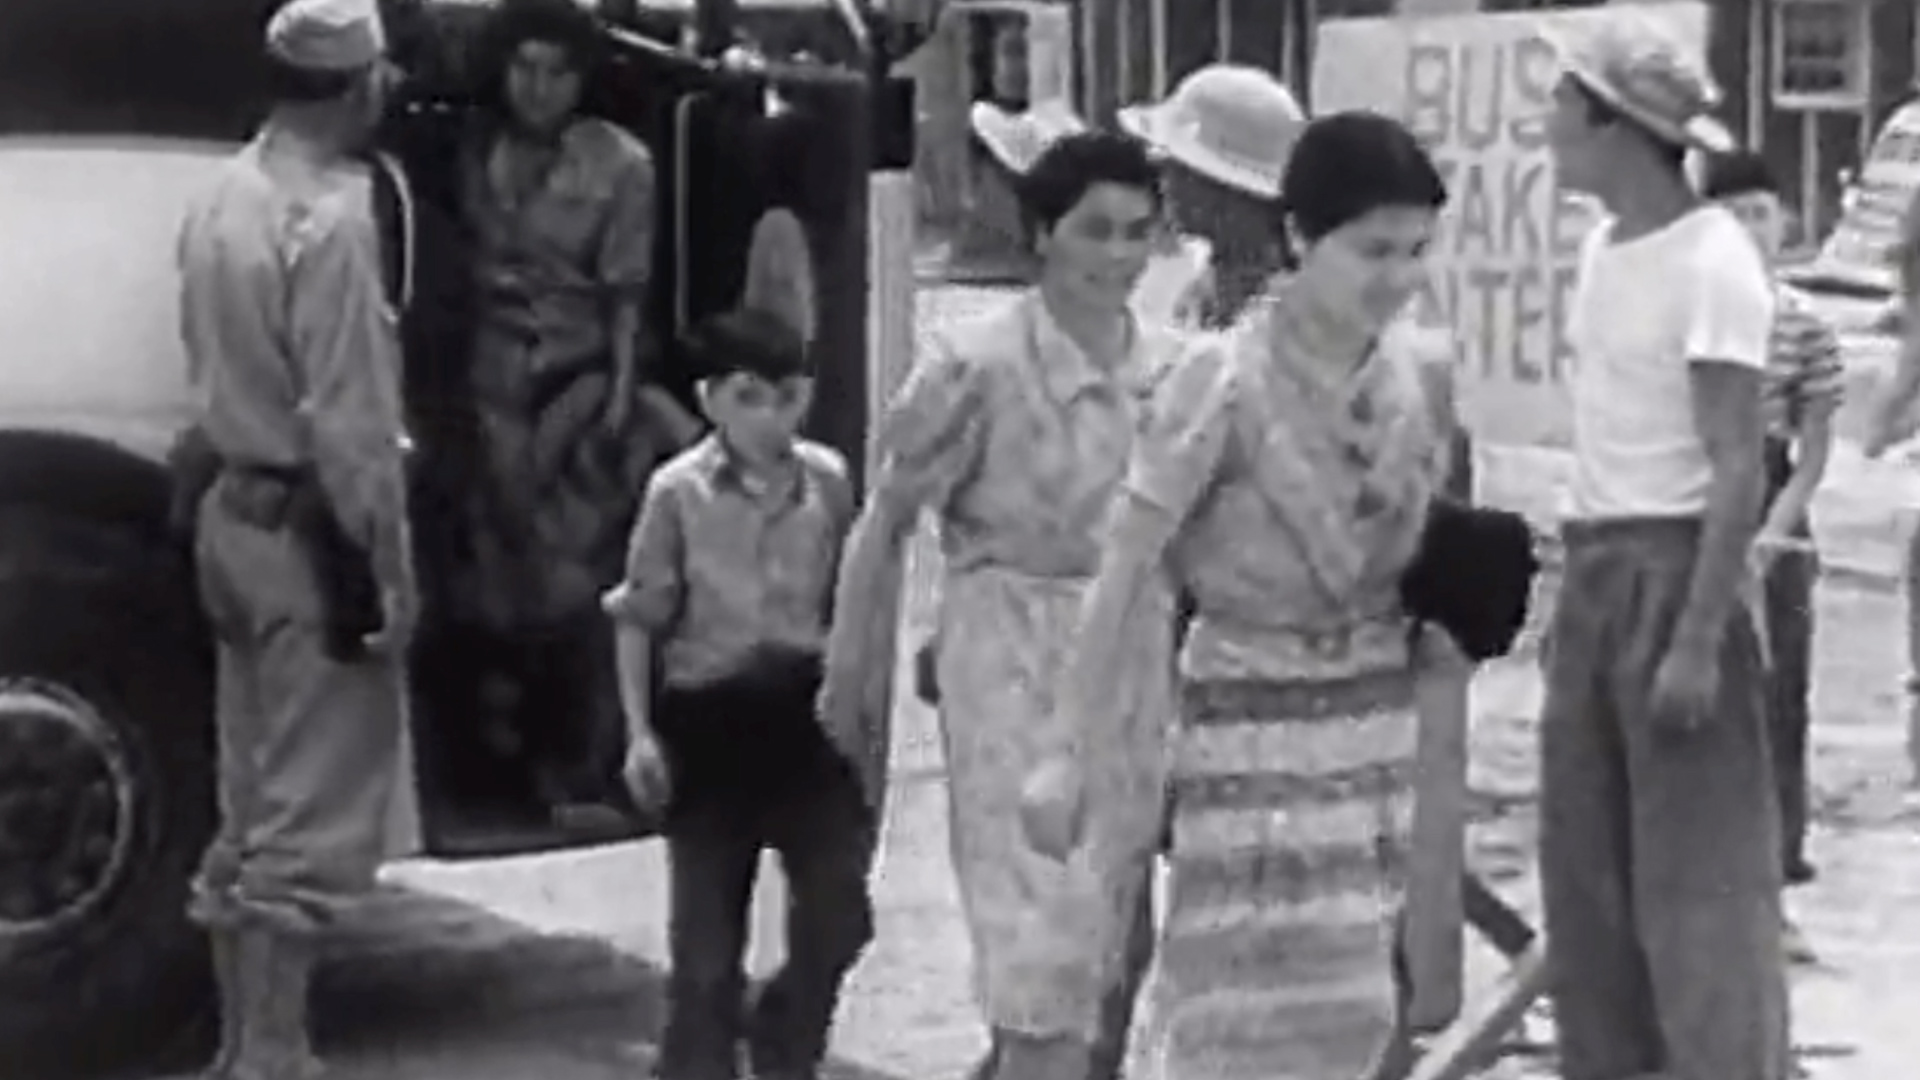 U S  government film sought to justify Japanese internment camps during  World War II